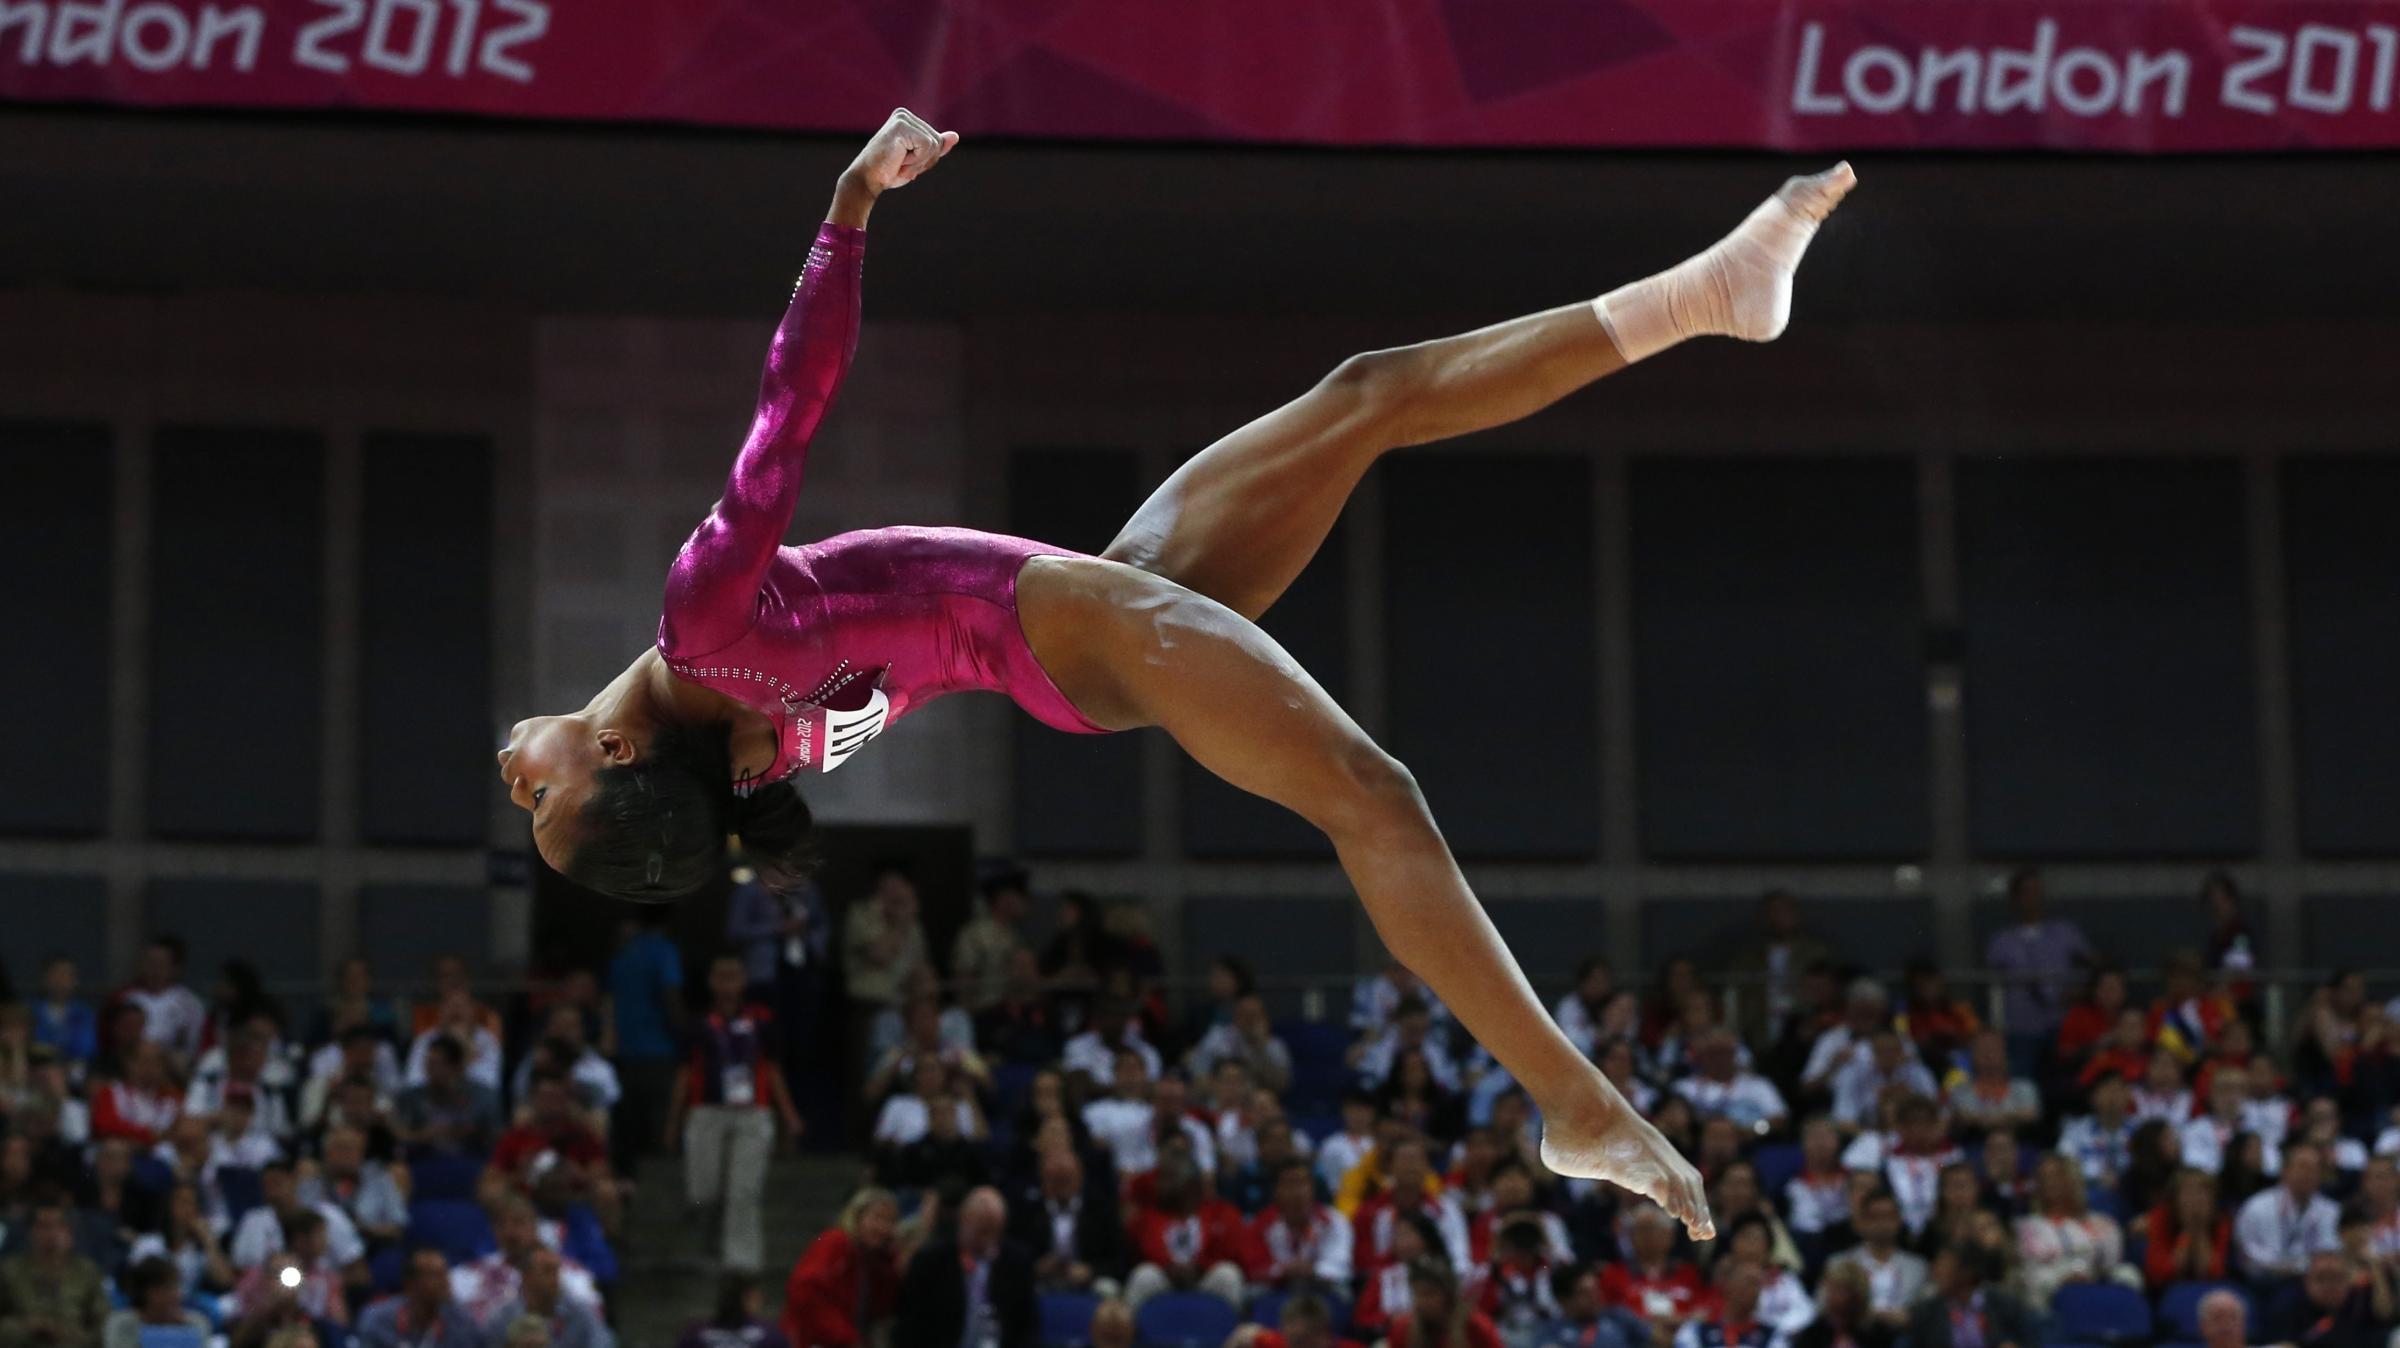 gabby douglas floor routine - photo #19